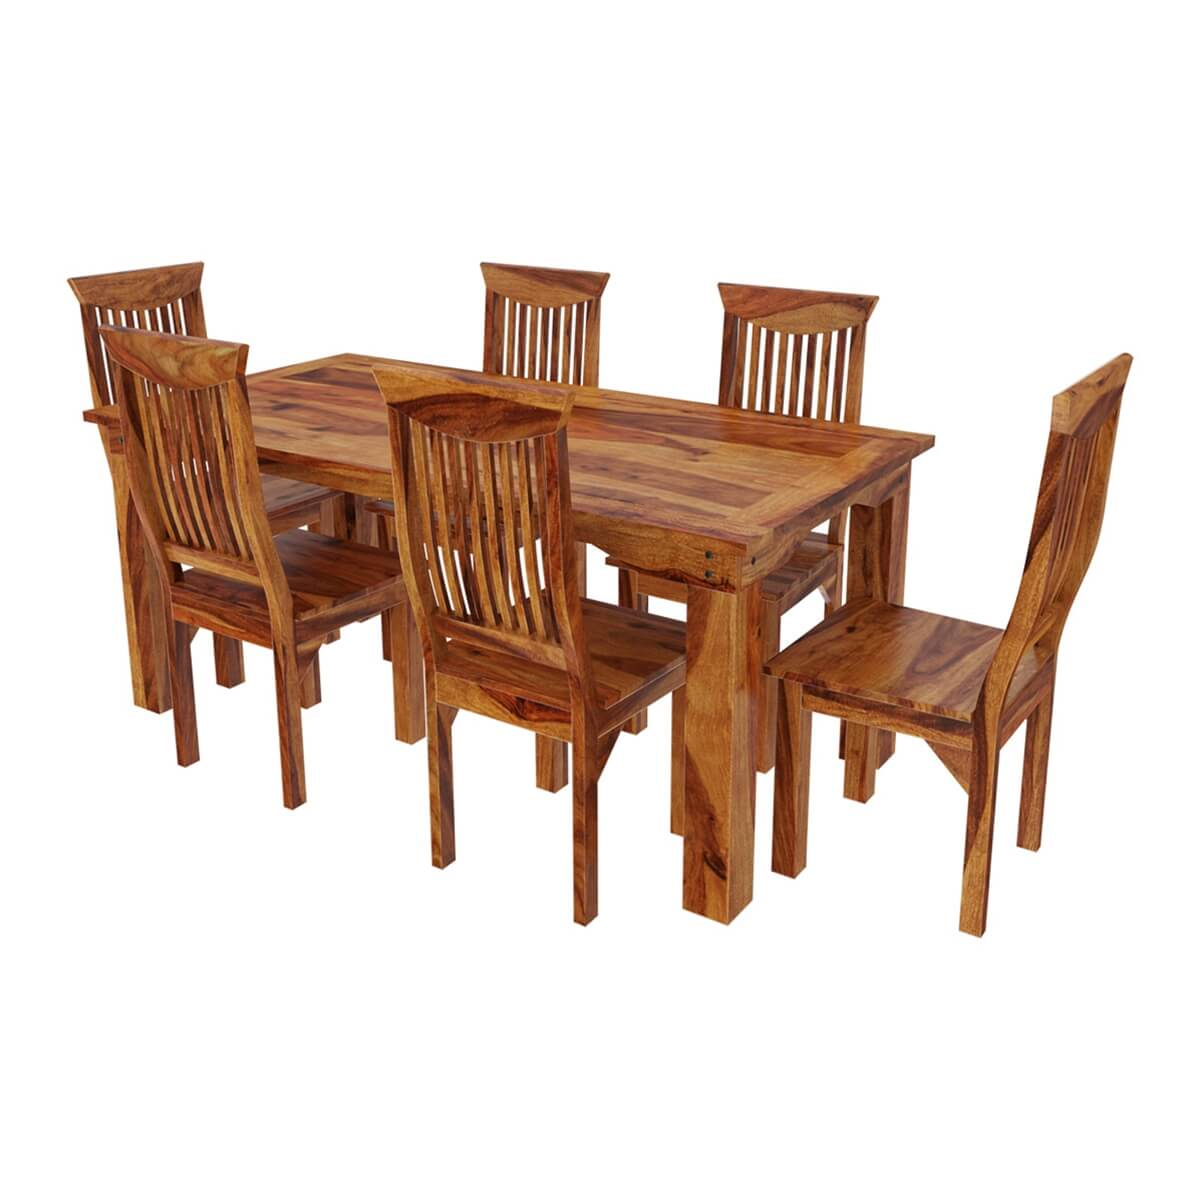 Nottingham Solid Wood Large Rustic Dining Room Table Chair Set: Idaho Modern Rustic Solid Wood Dining Table & Chair Set